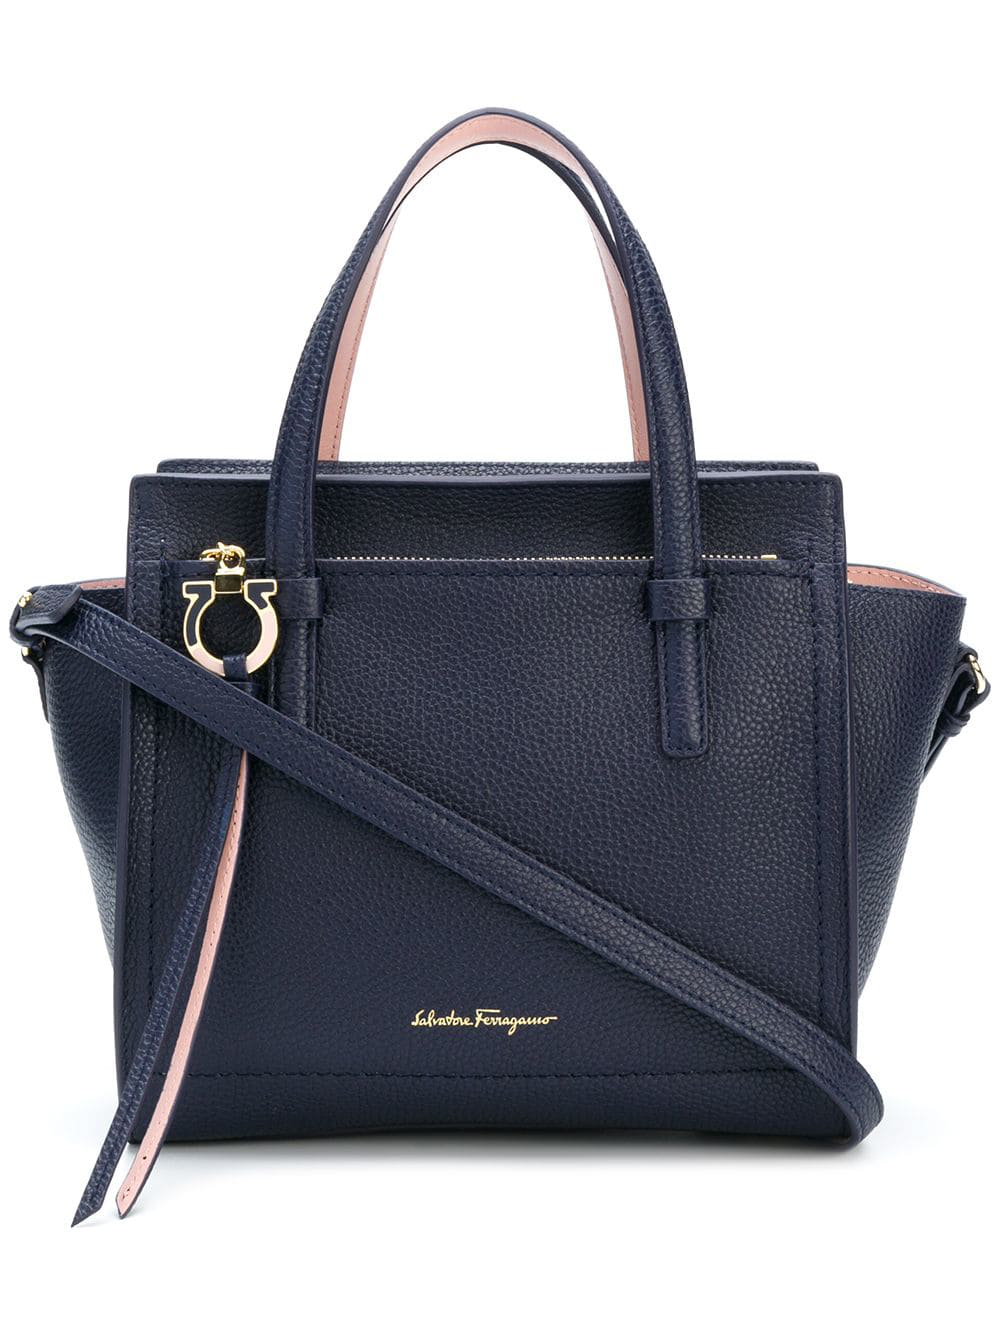 Salvatore Ferragamo Blue